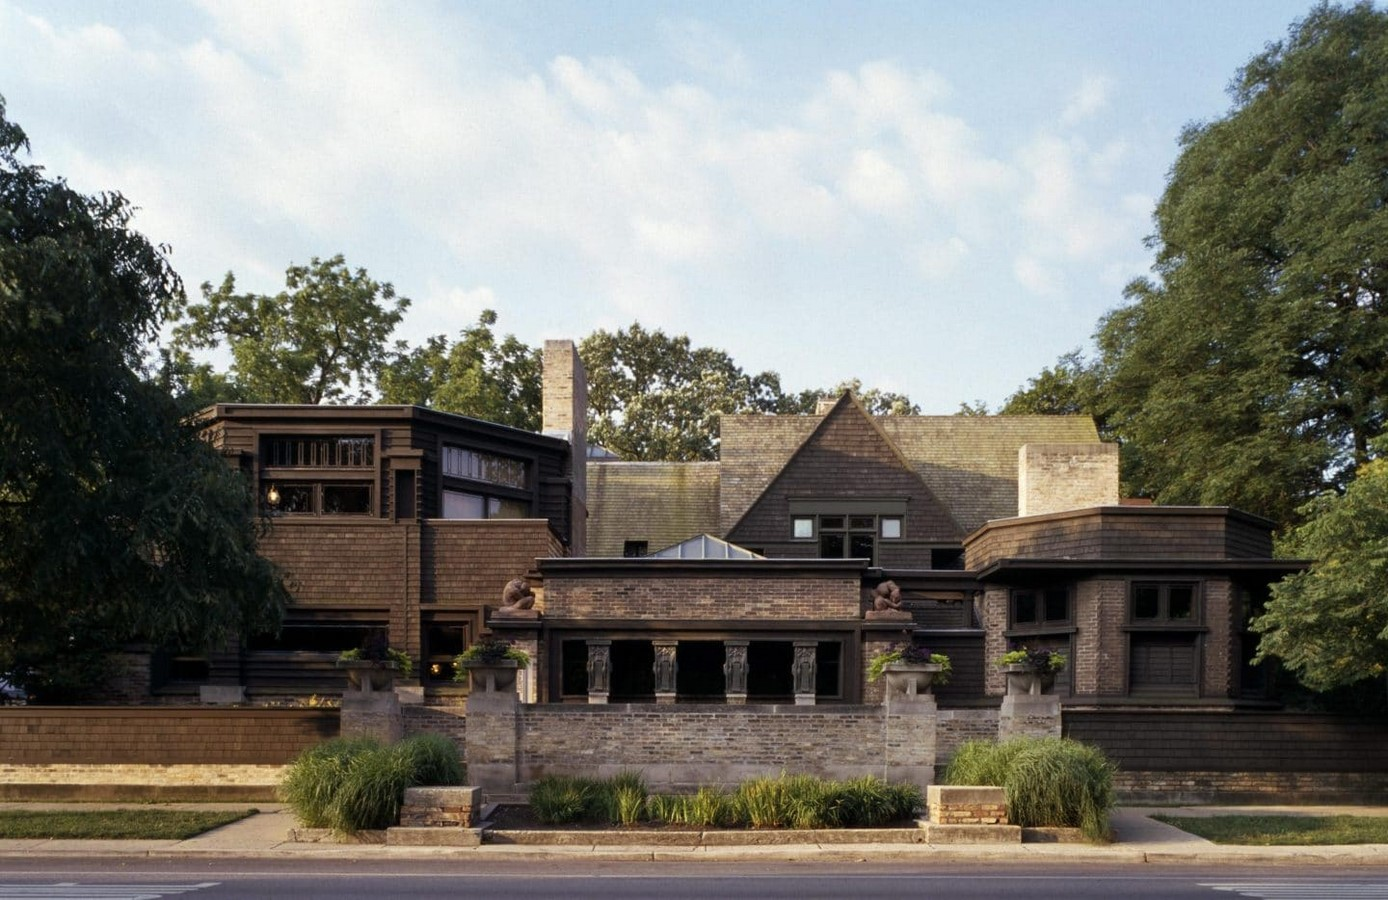 Youtube for Architects: That Far Corner - Frank Lloyd Wright in Los Angeles - Sheet2